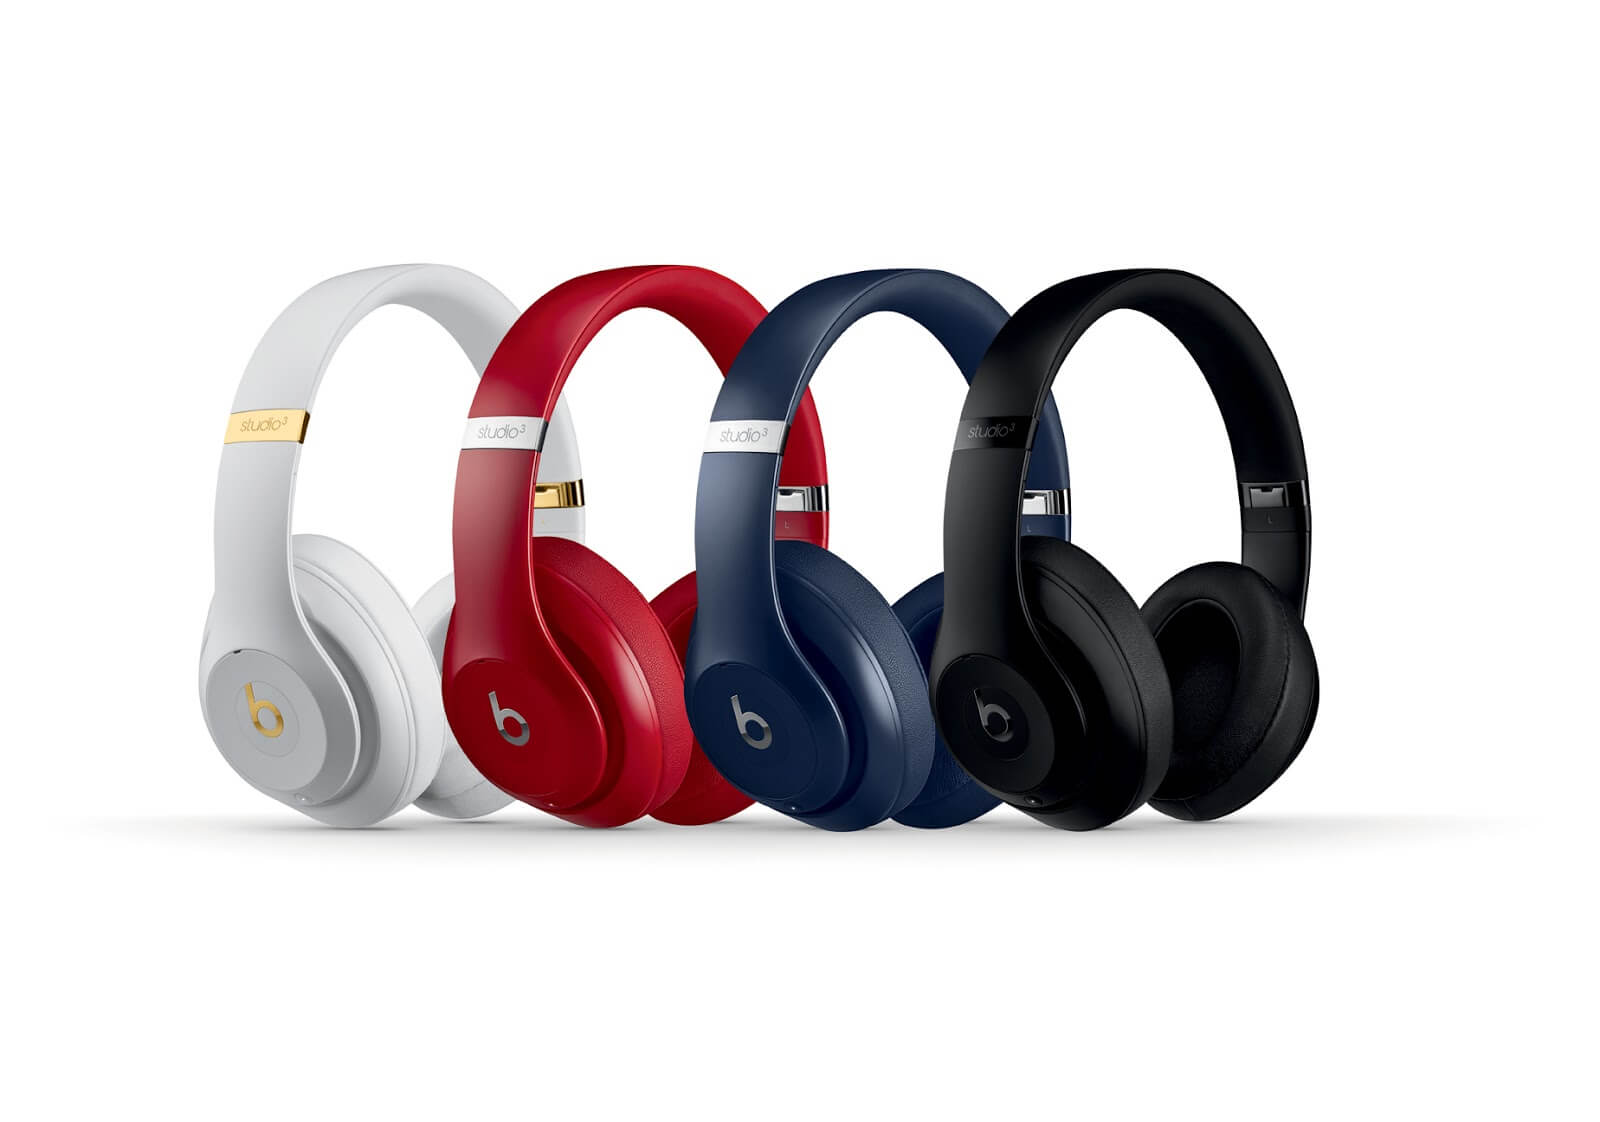 Beats by Dr. Dre Studio 3 Wireless Headphones in 4 different colors